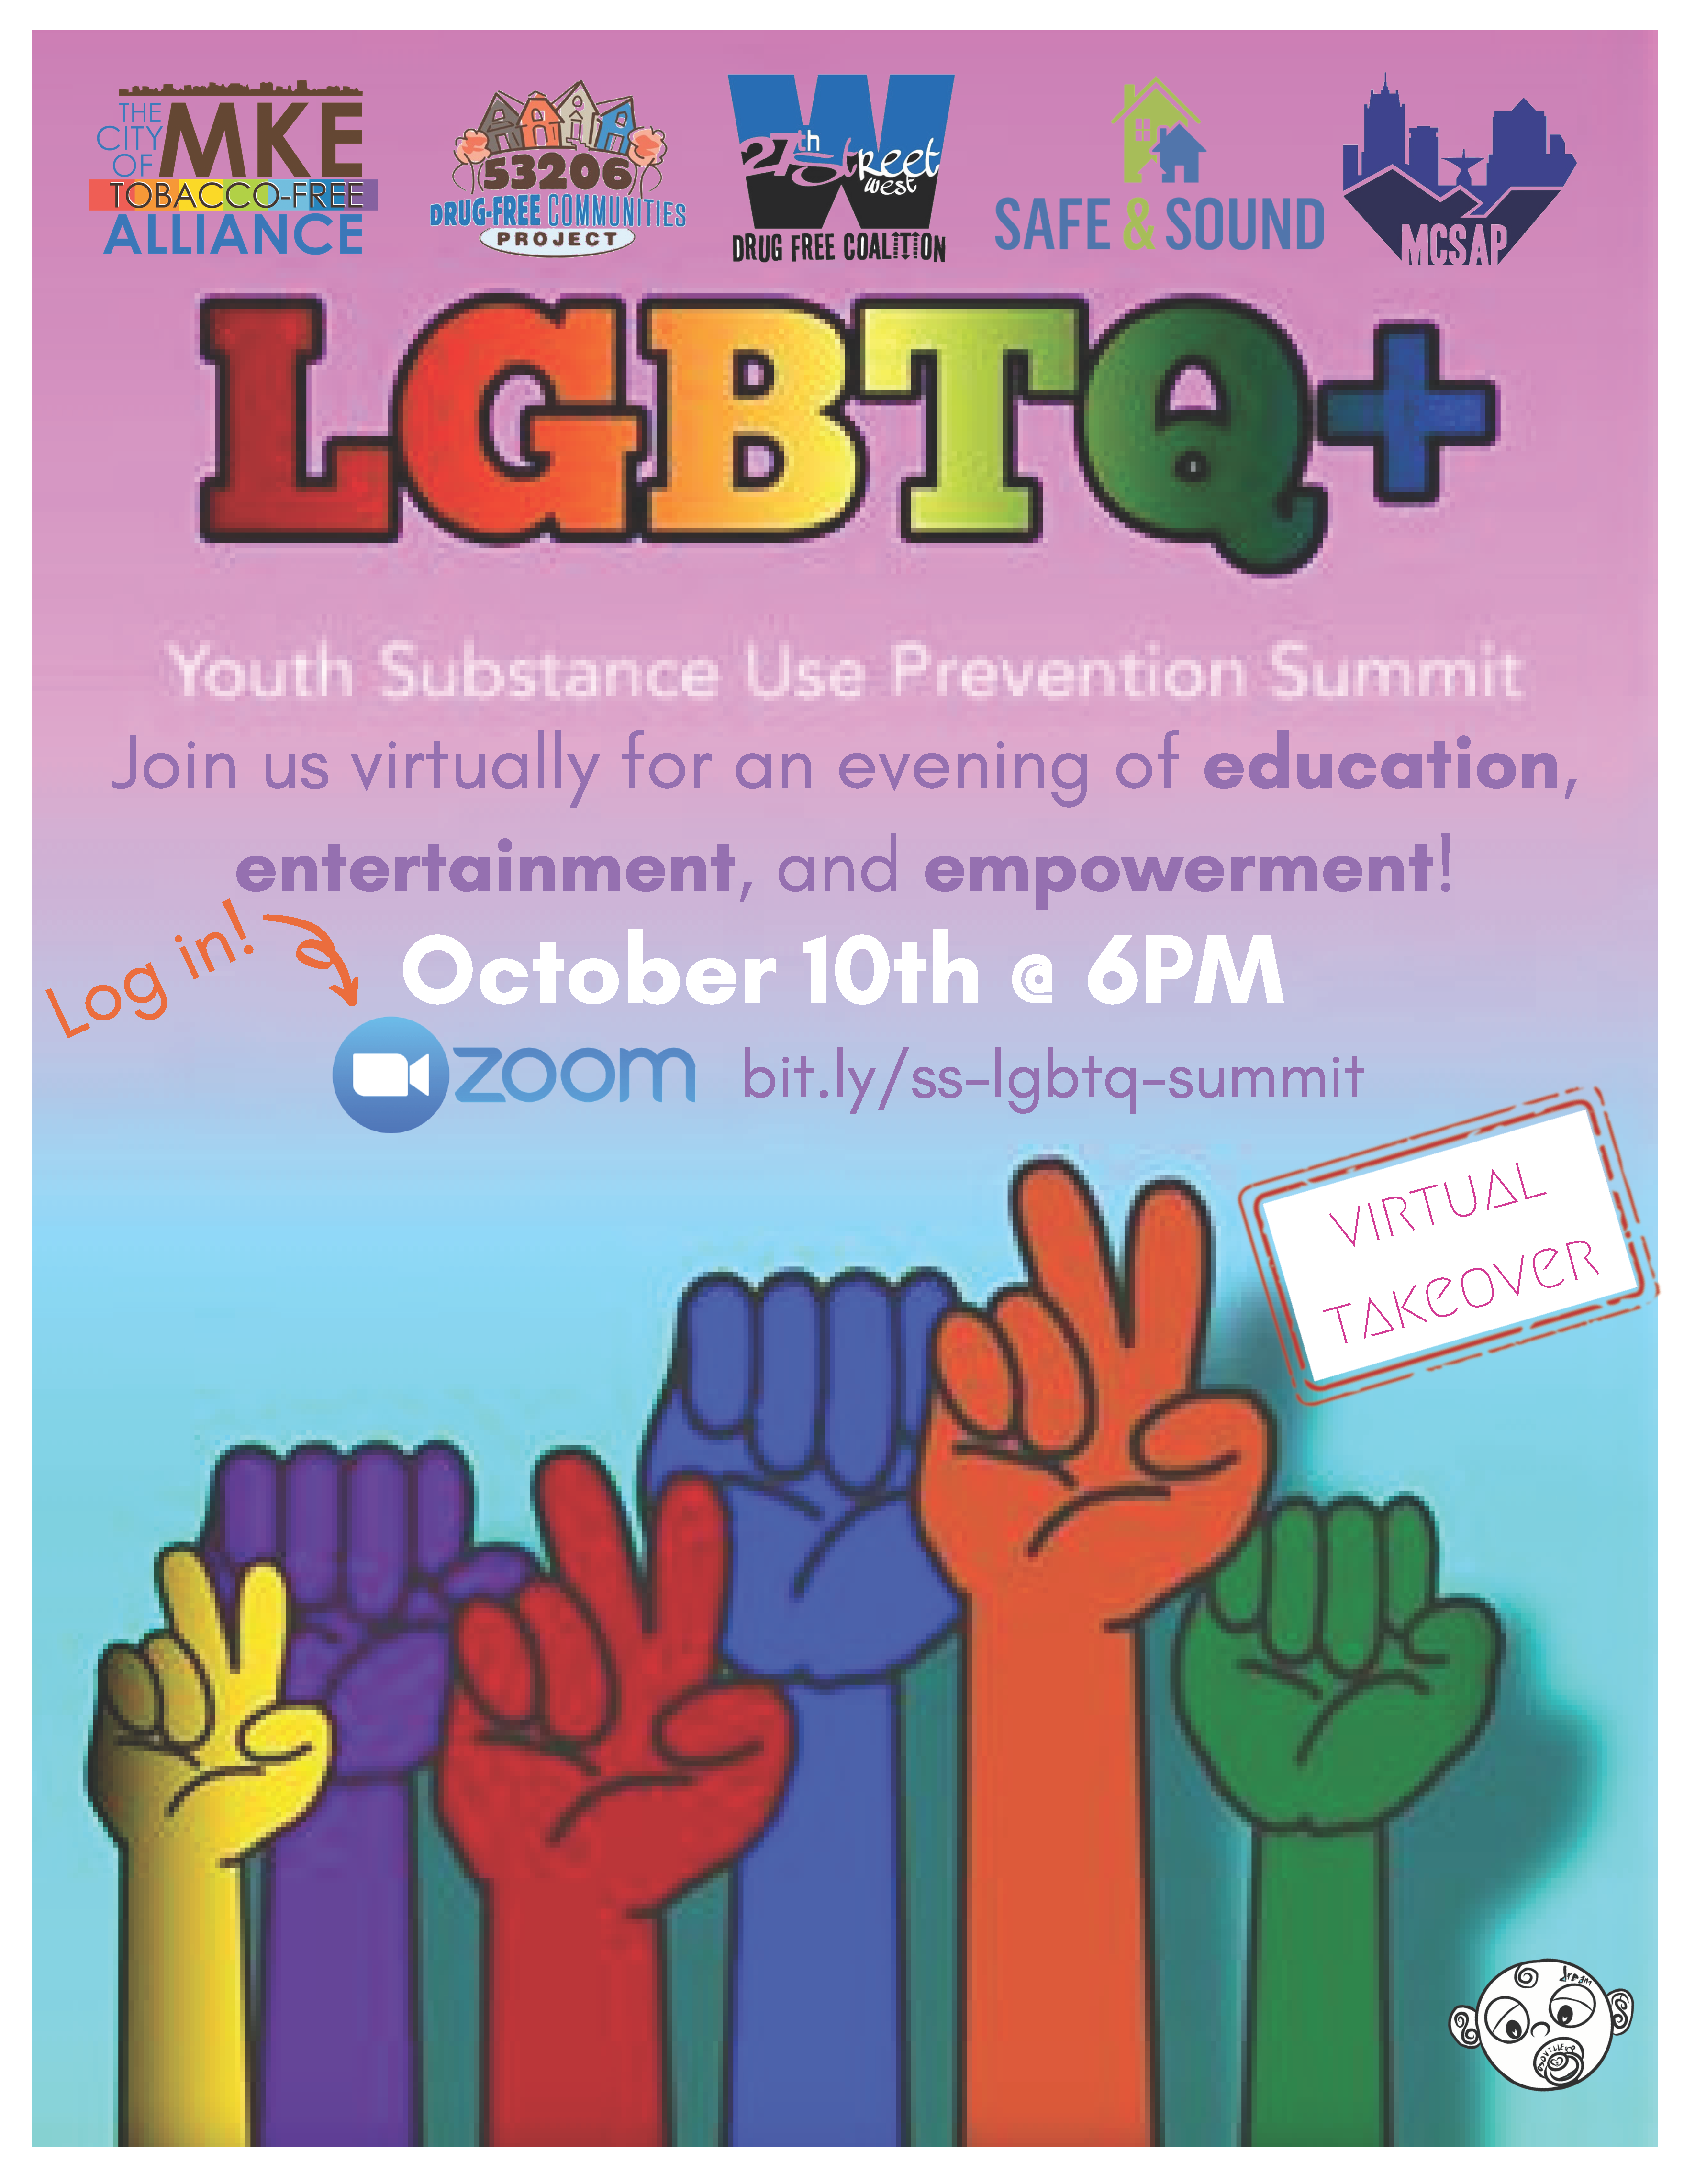 LGBTQ+ Youth Substance Abuse Prevention Summit